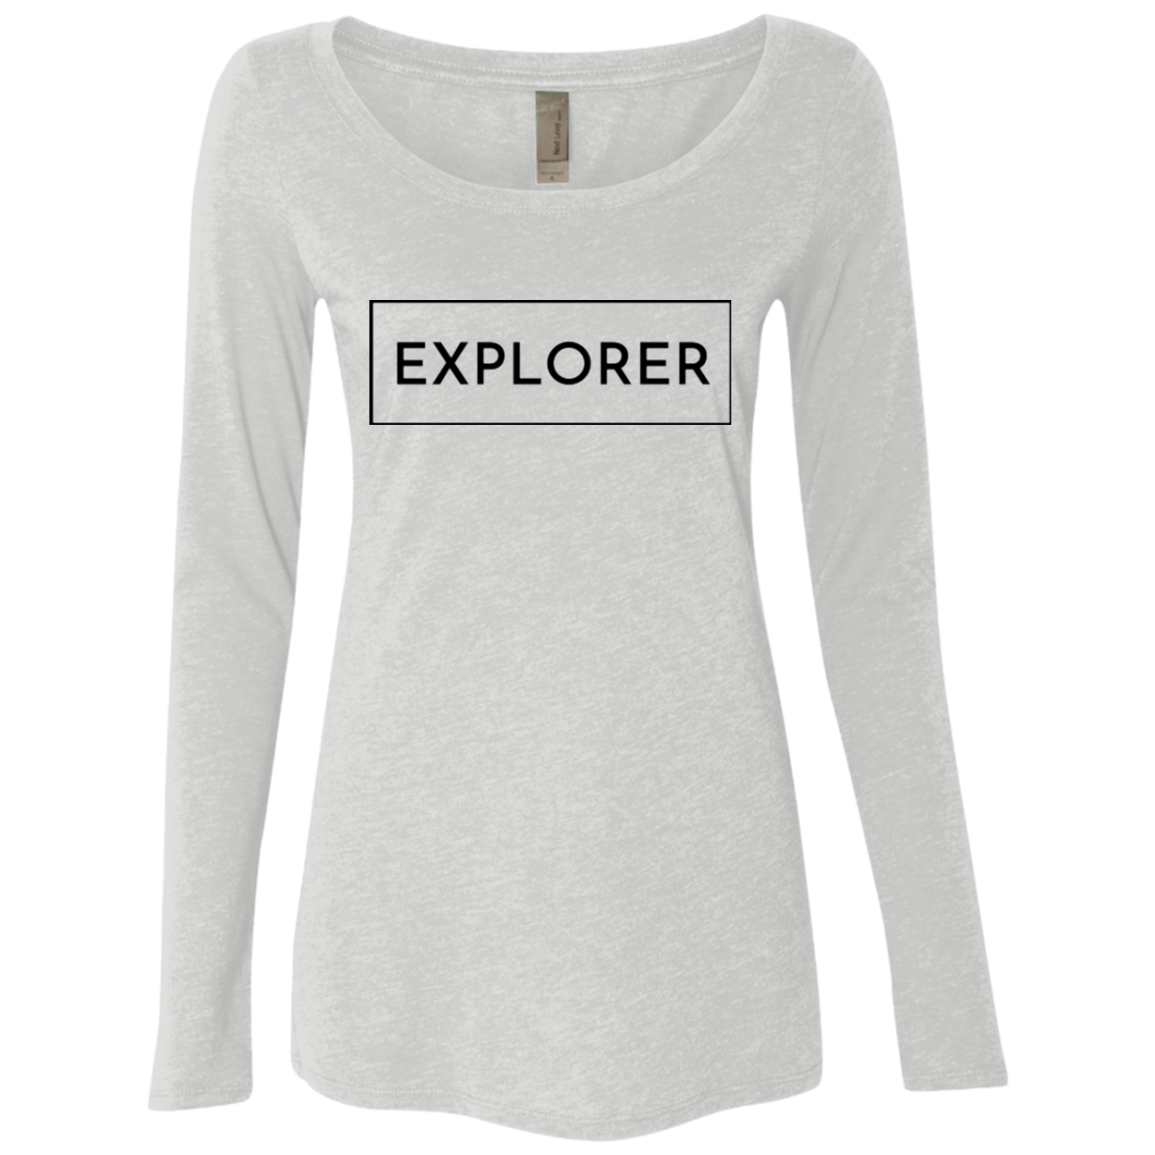 Explorer Women's Long Sleeve Tee